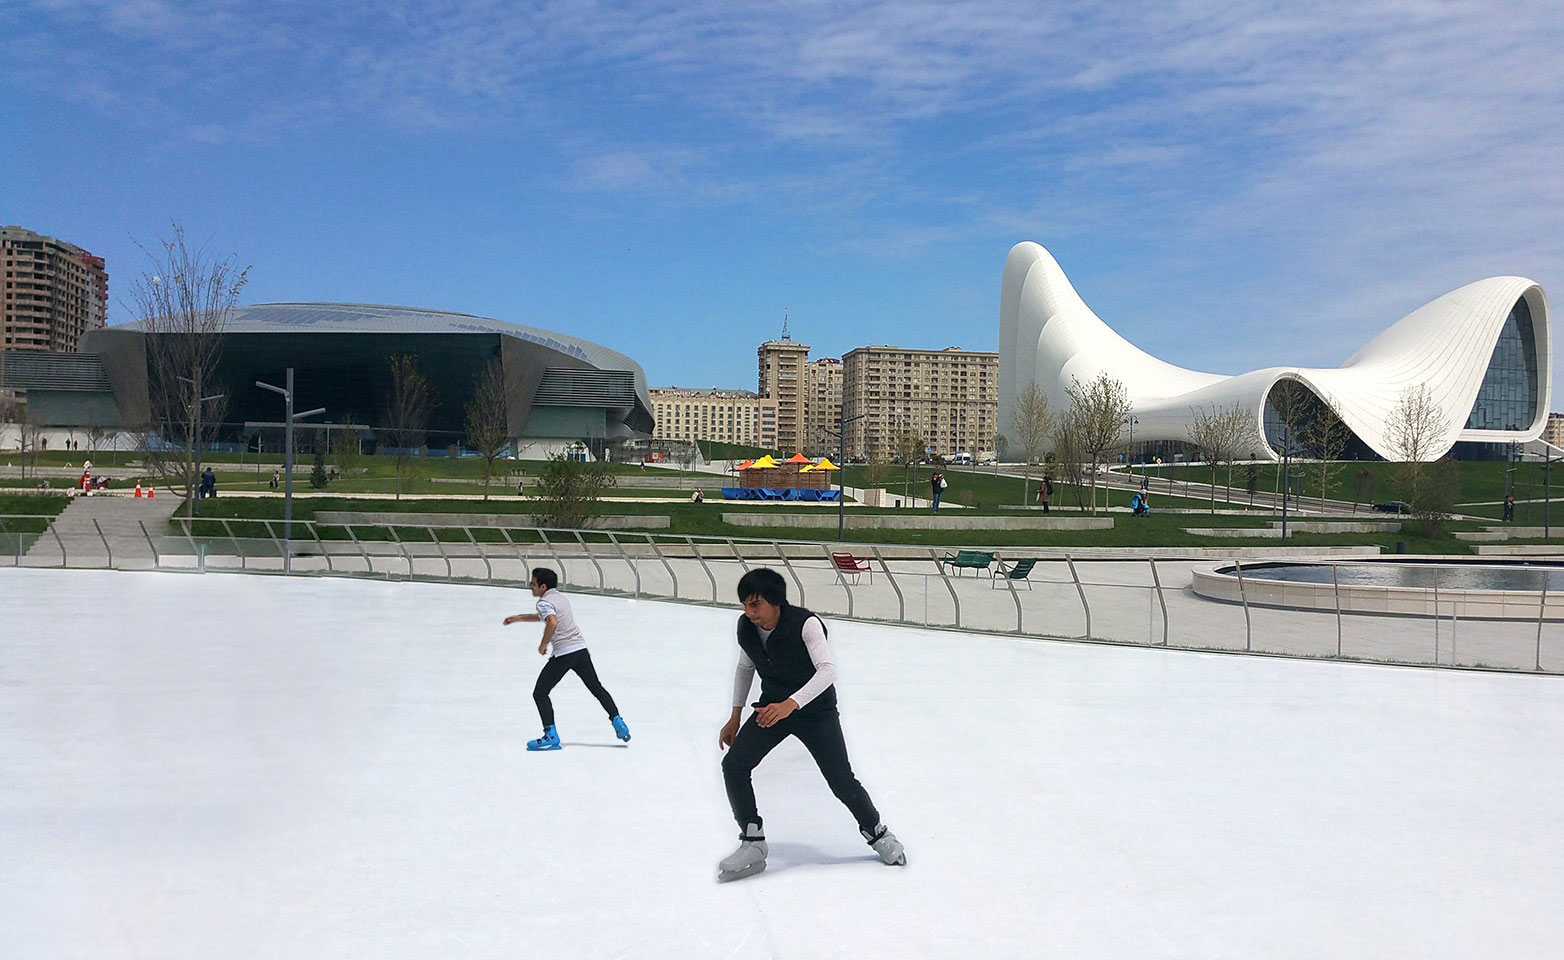 The world's largest synthetic ice rink in Azerbaijan